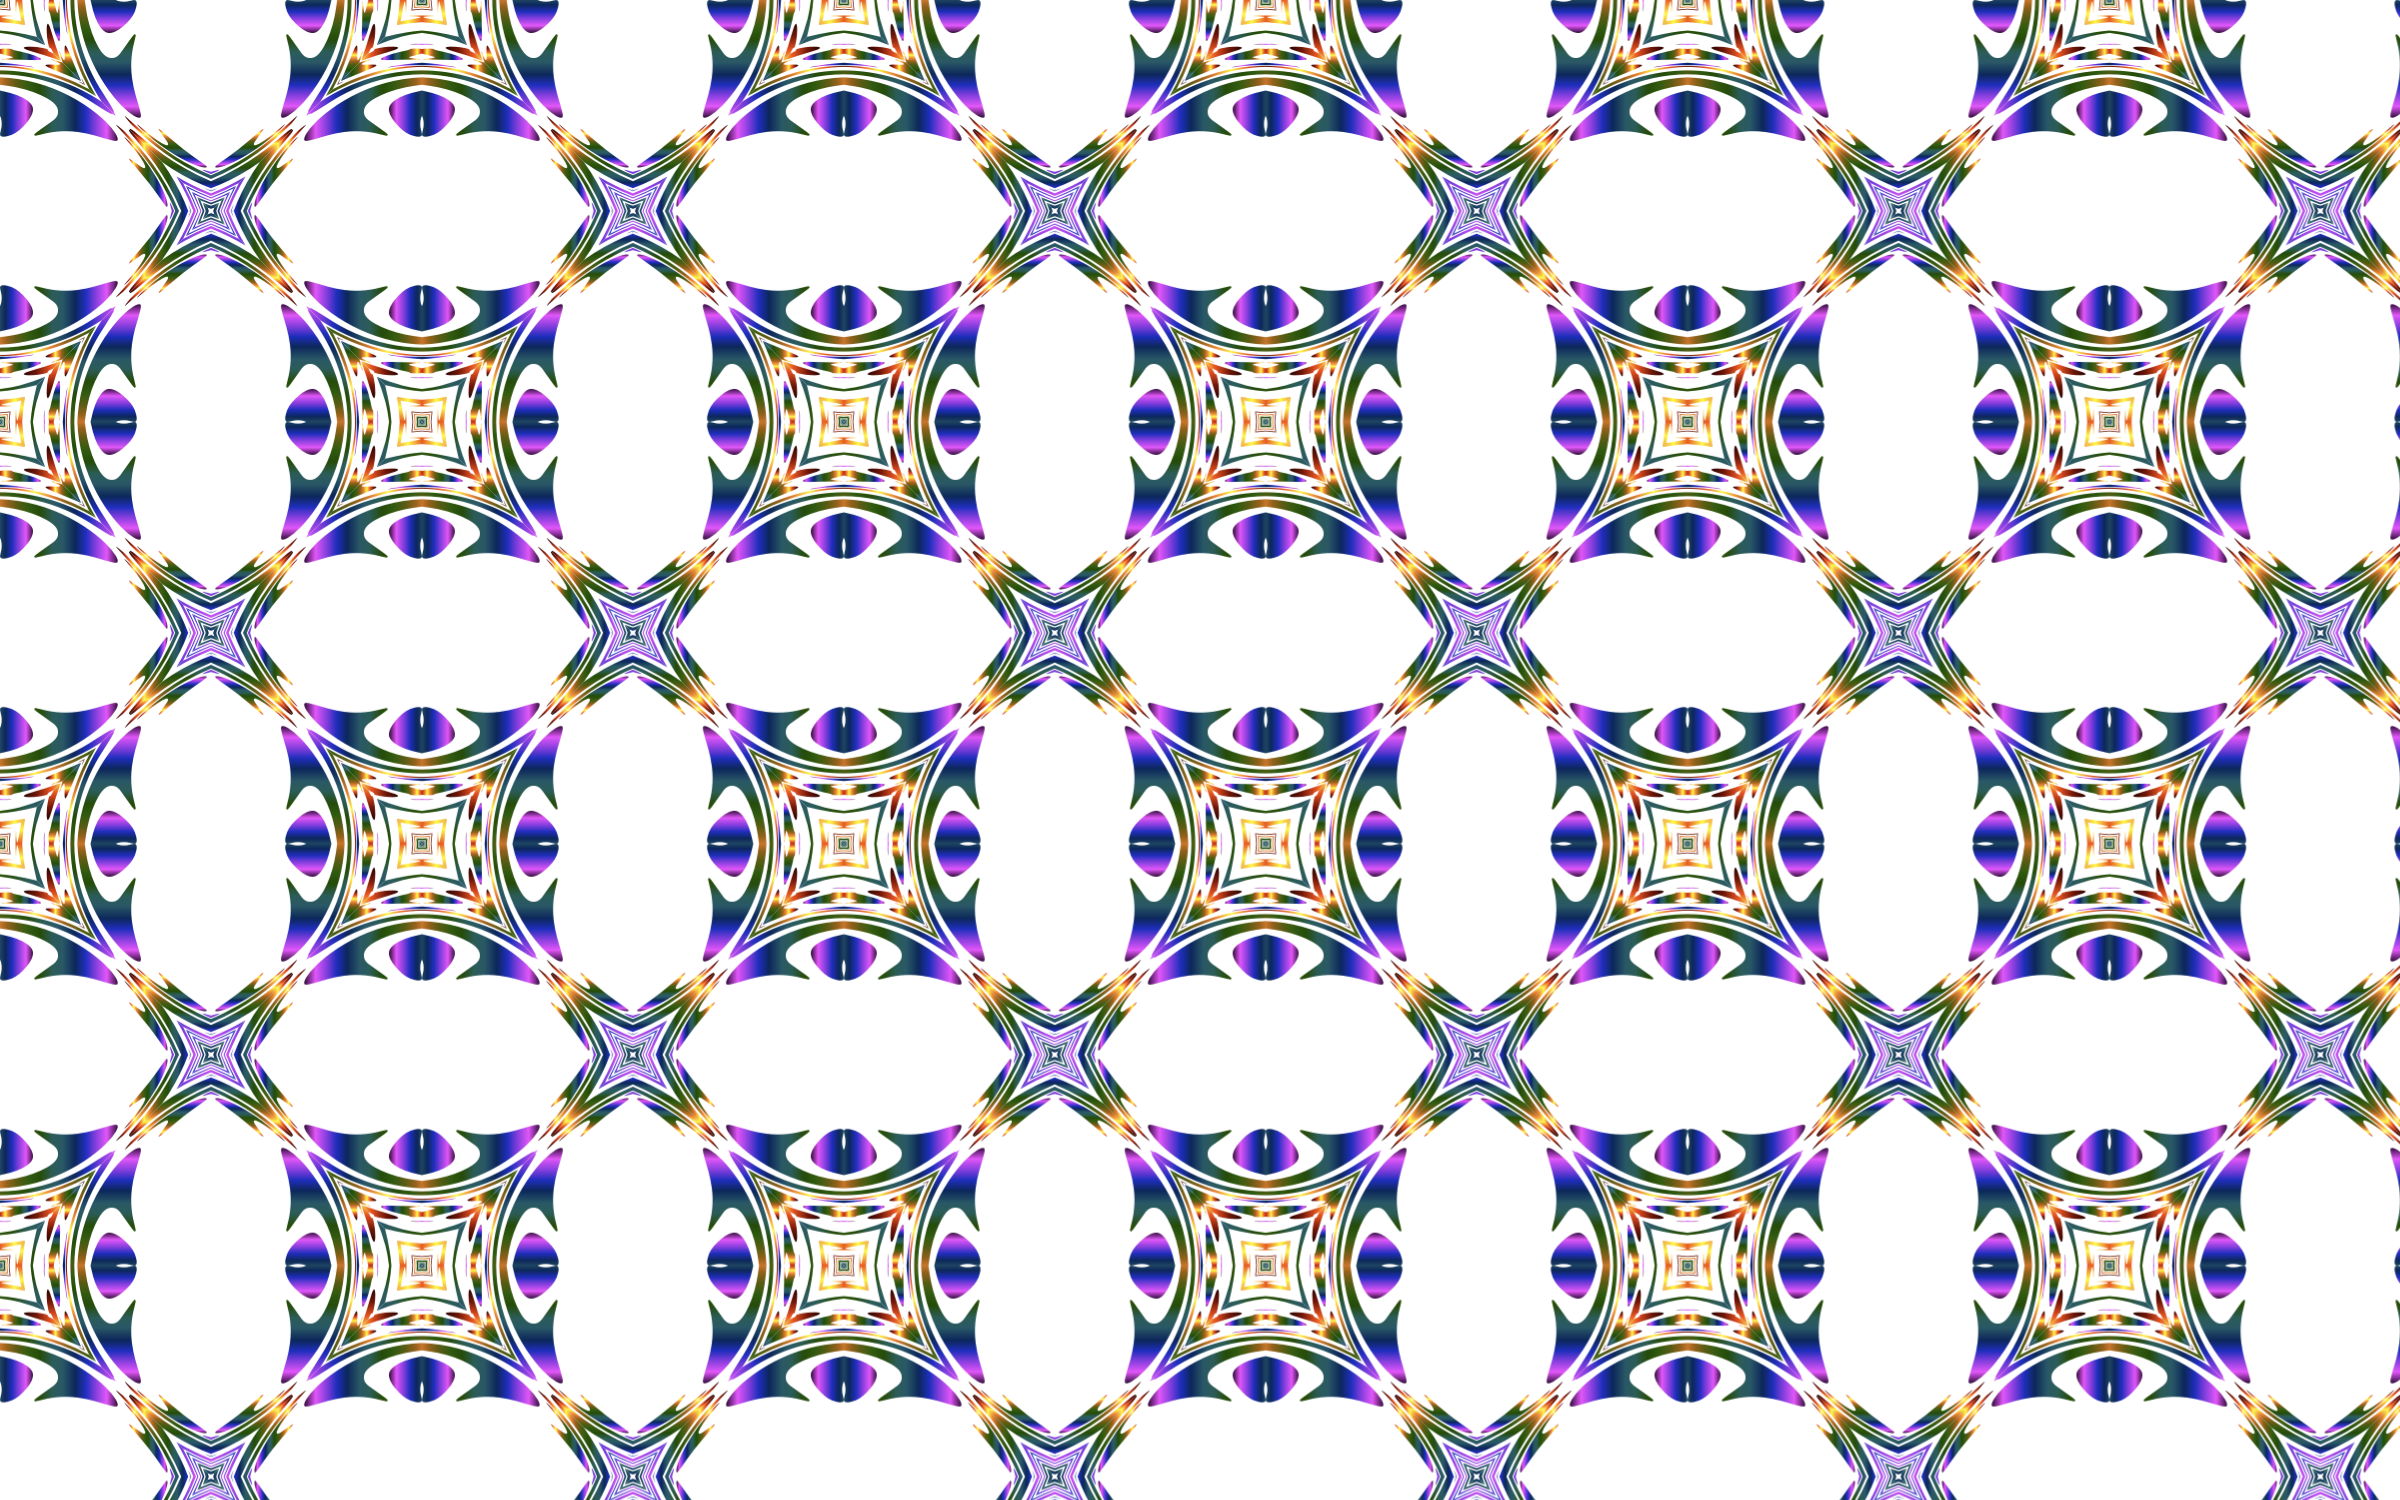 Seamless Pattern 112 by GDJ